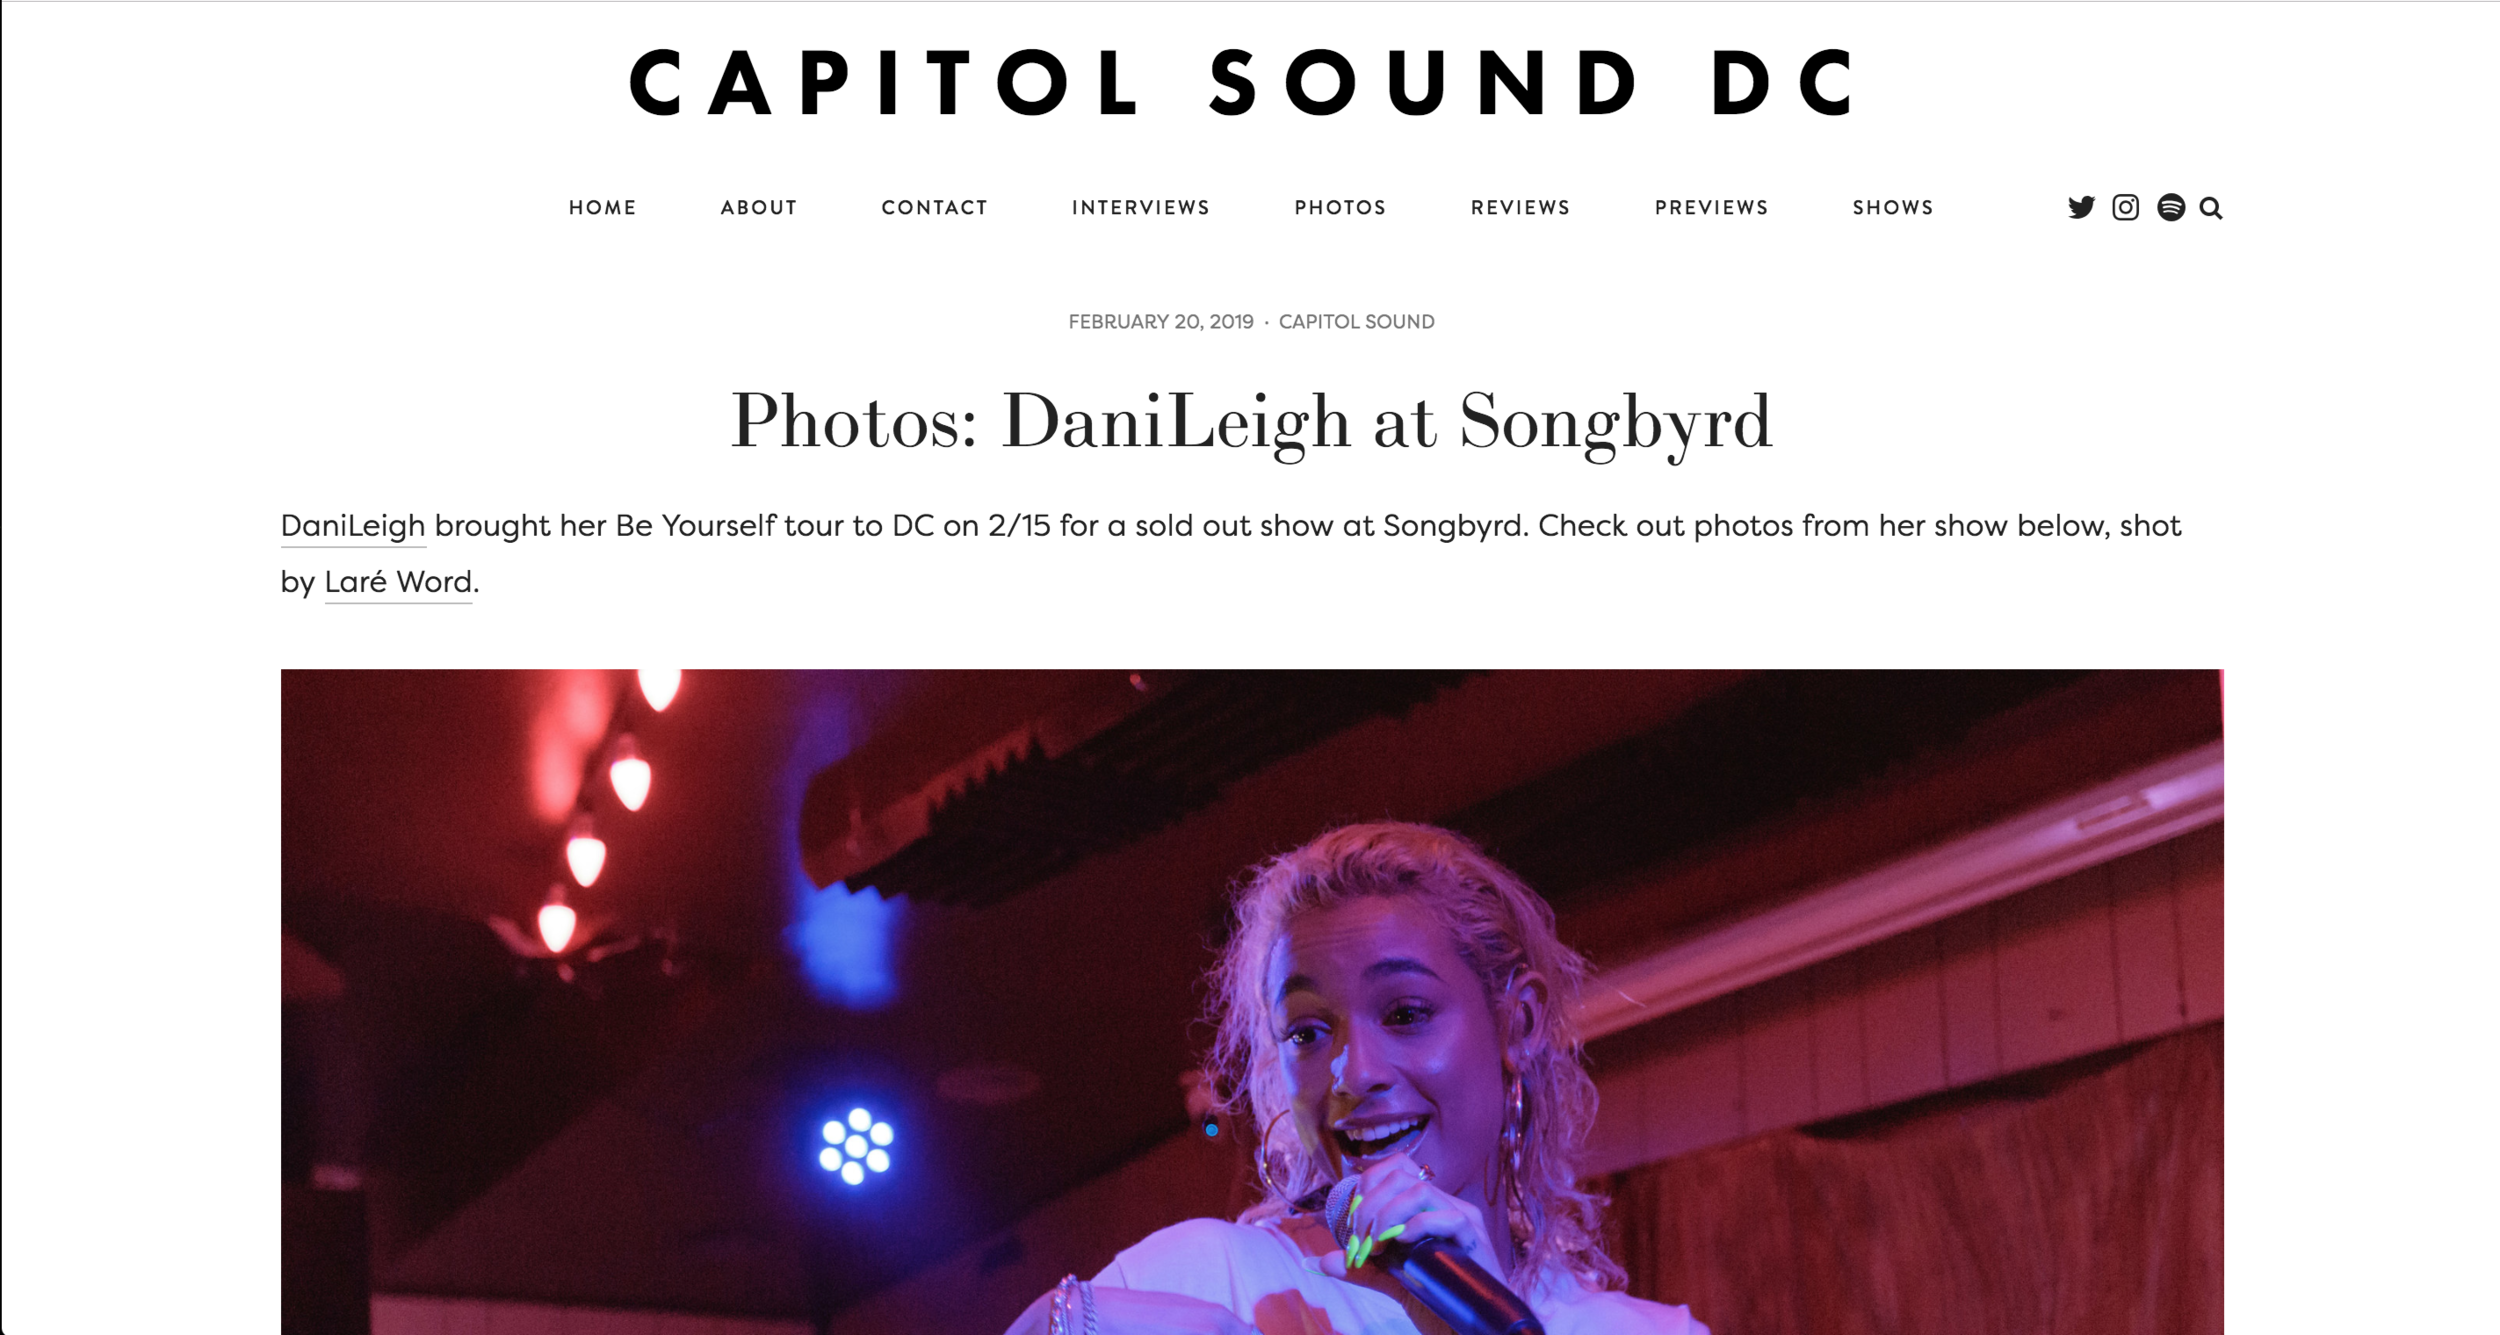 https://capitolsounddc.com/capitol-sound/2019/photos-danileigh-at-songbyrd